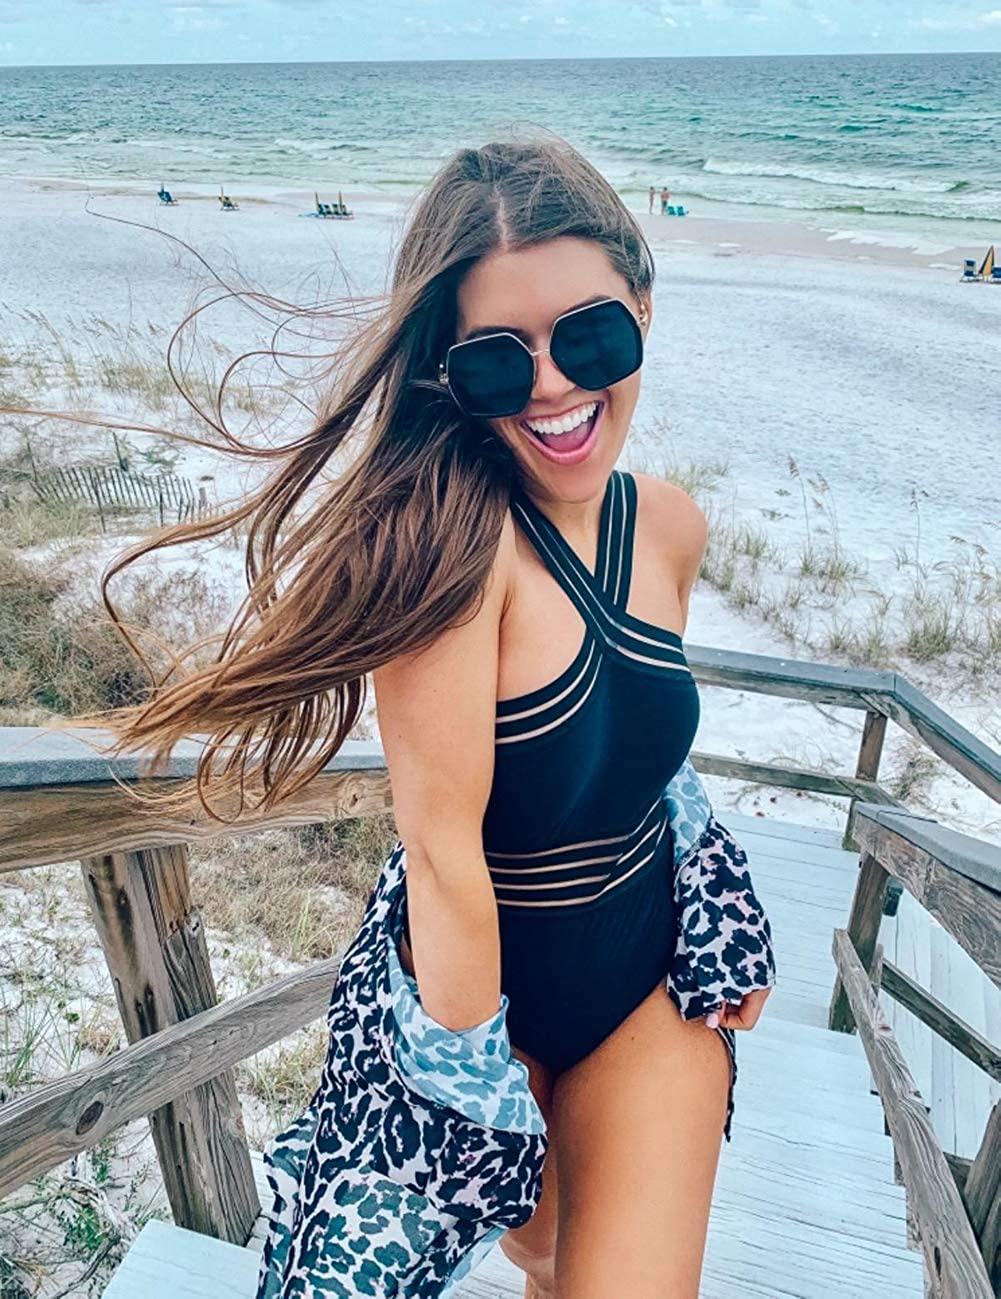 Amazon Shoppers Love How the Stylish Details on This One-Piece Swimsuit Are Secretly So Functional